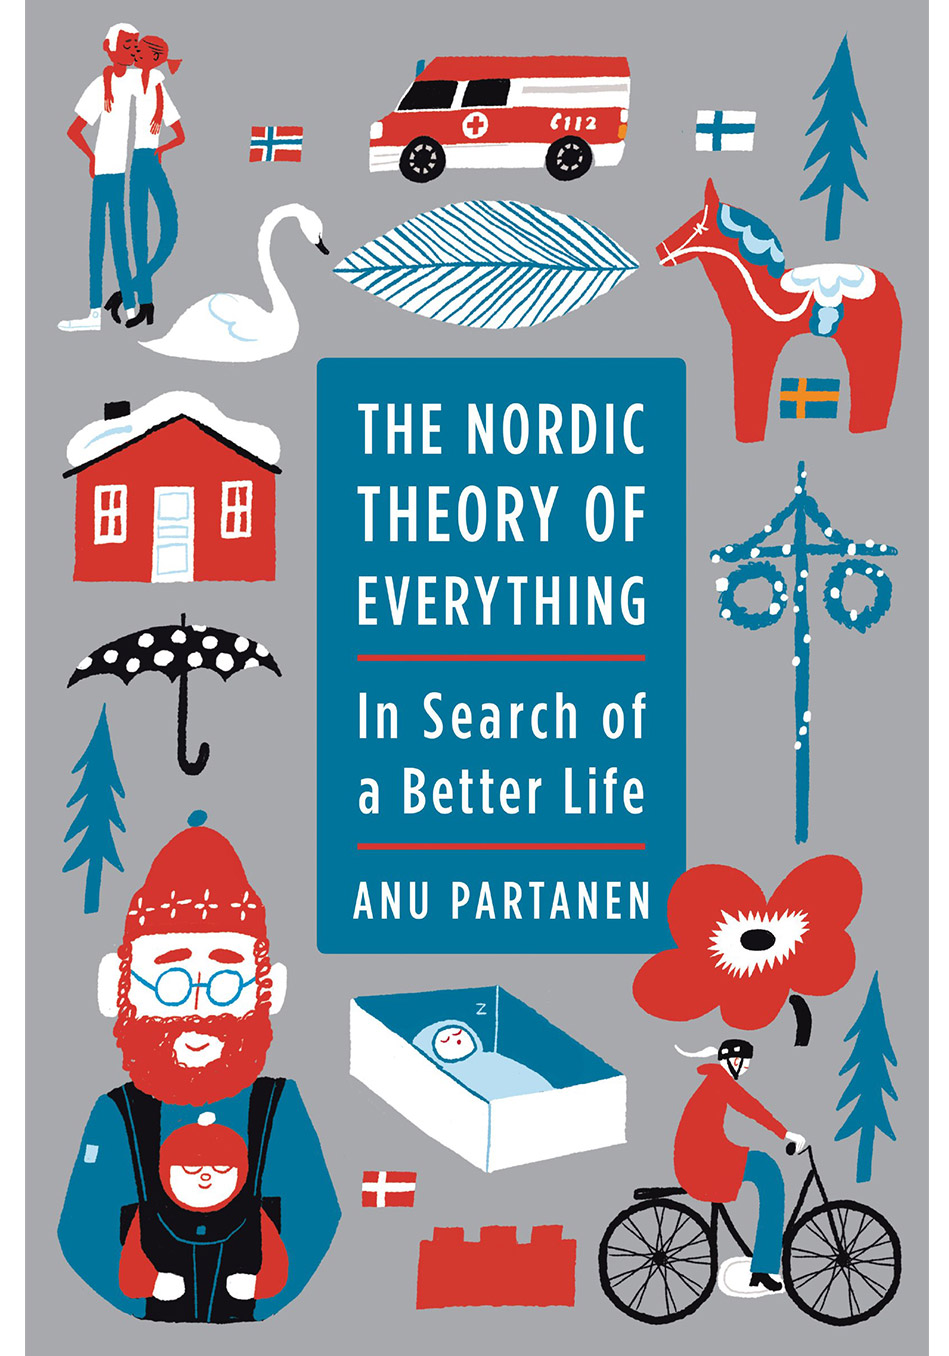 201607-omag-nordic-theory-of-everything-cover-949x1356.jpg